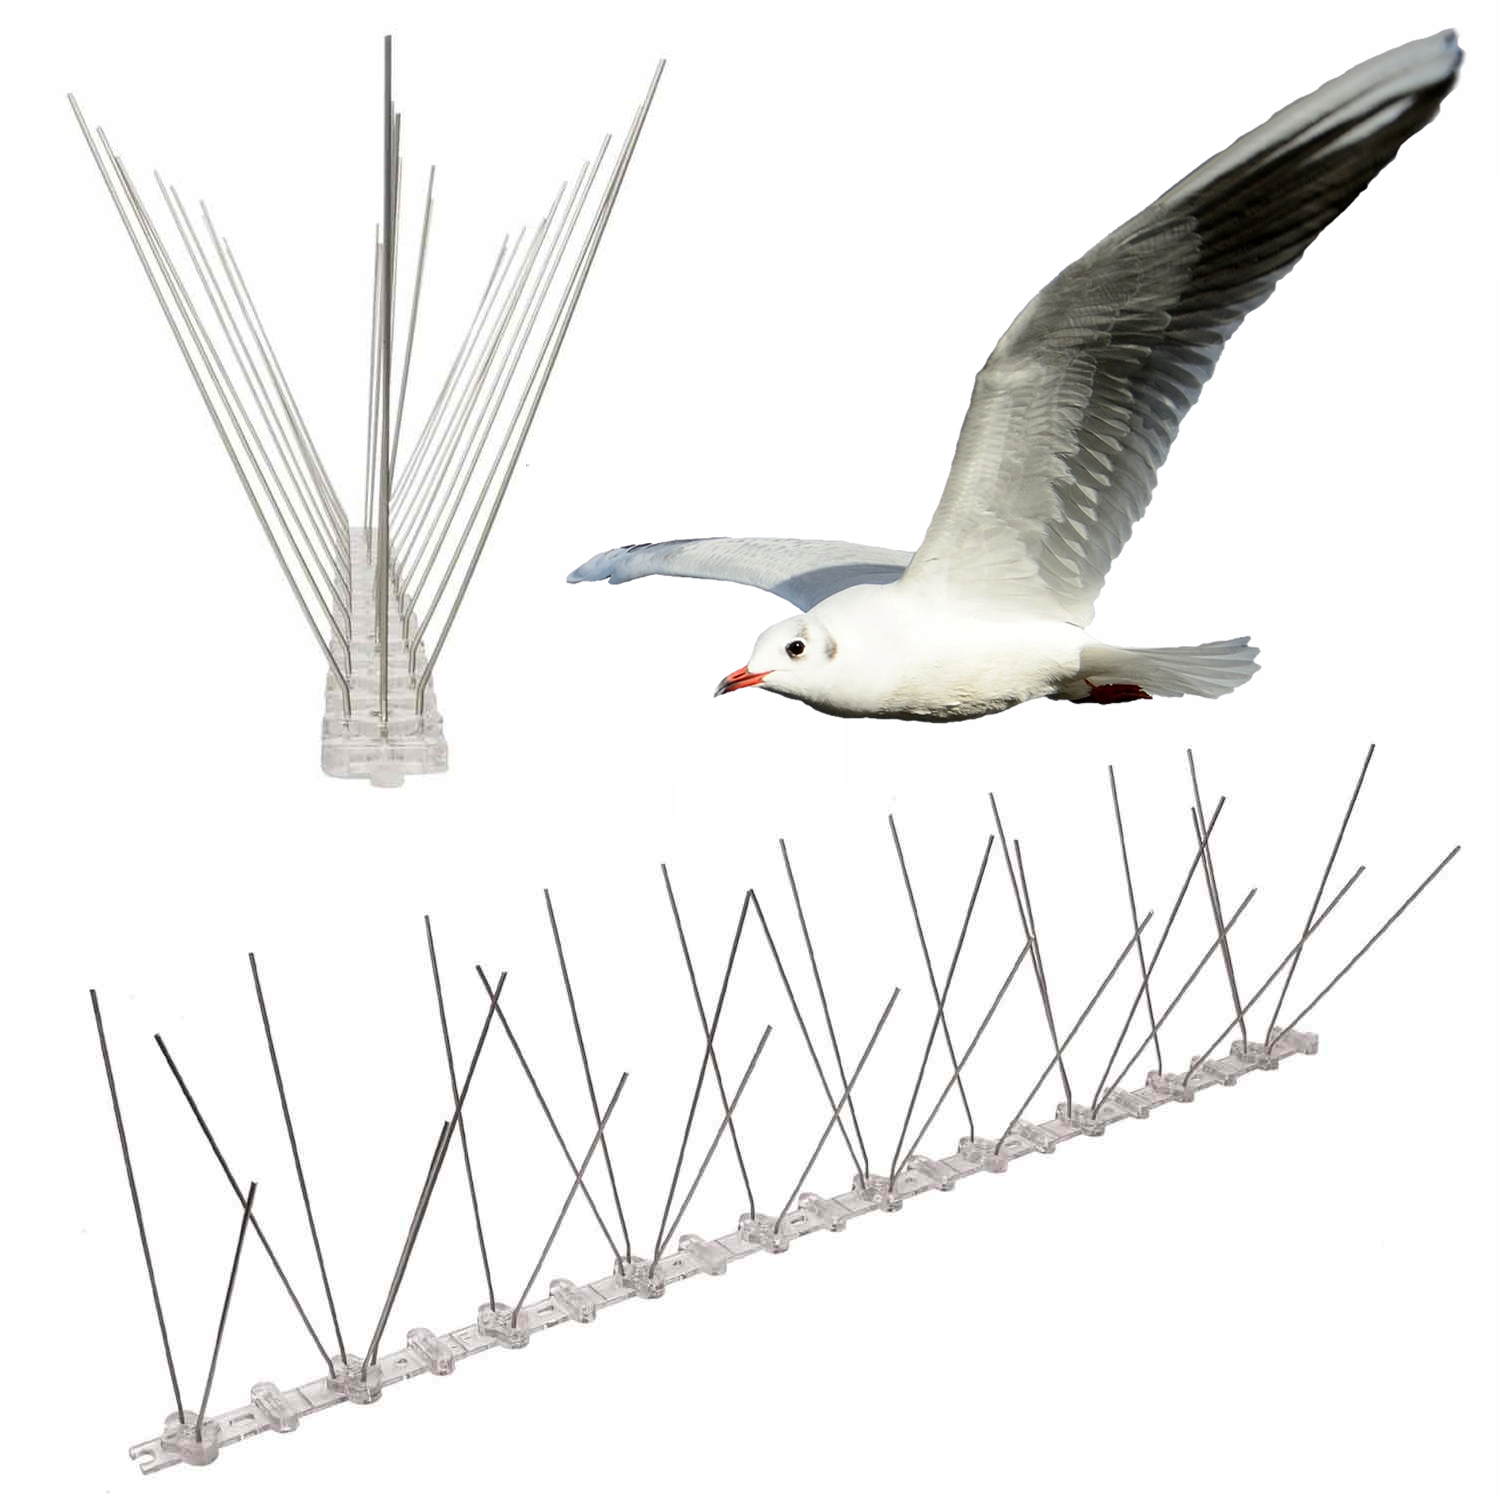 spikes to stop seagulls